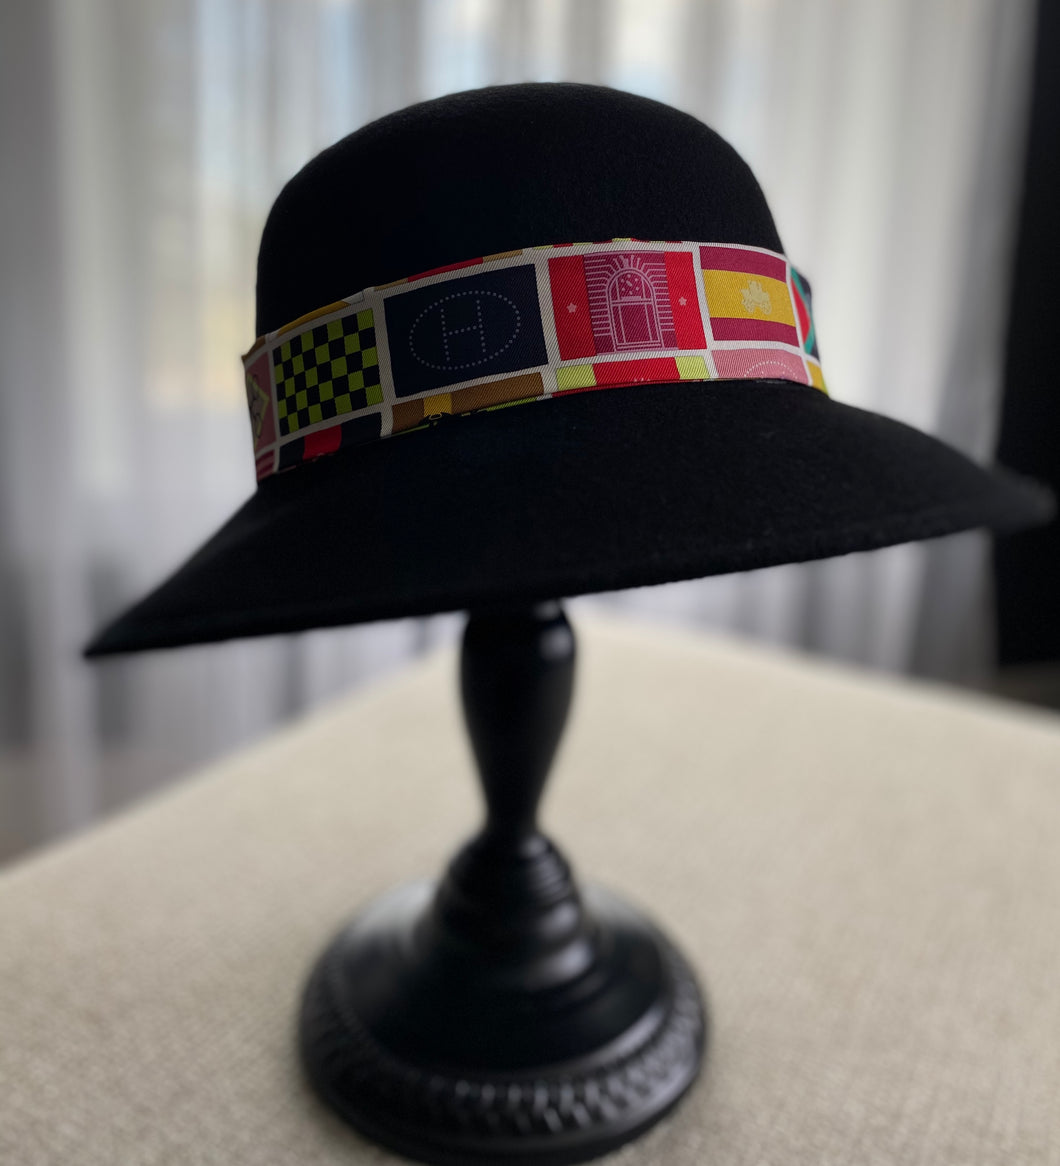 Hermès Scarf Wool Trench Hat (HAT901)